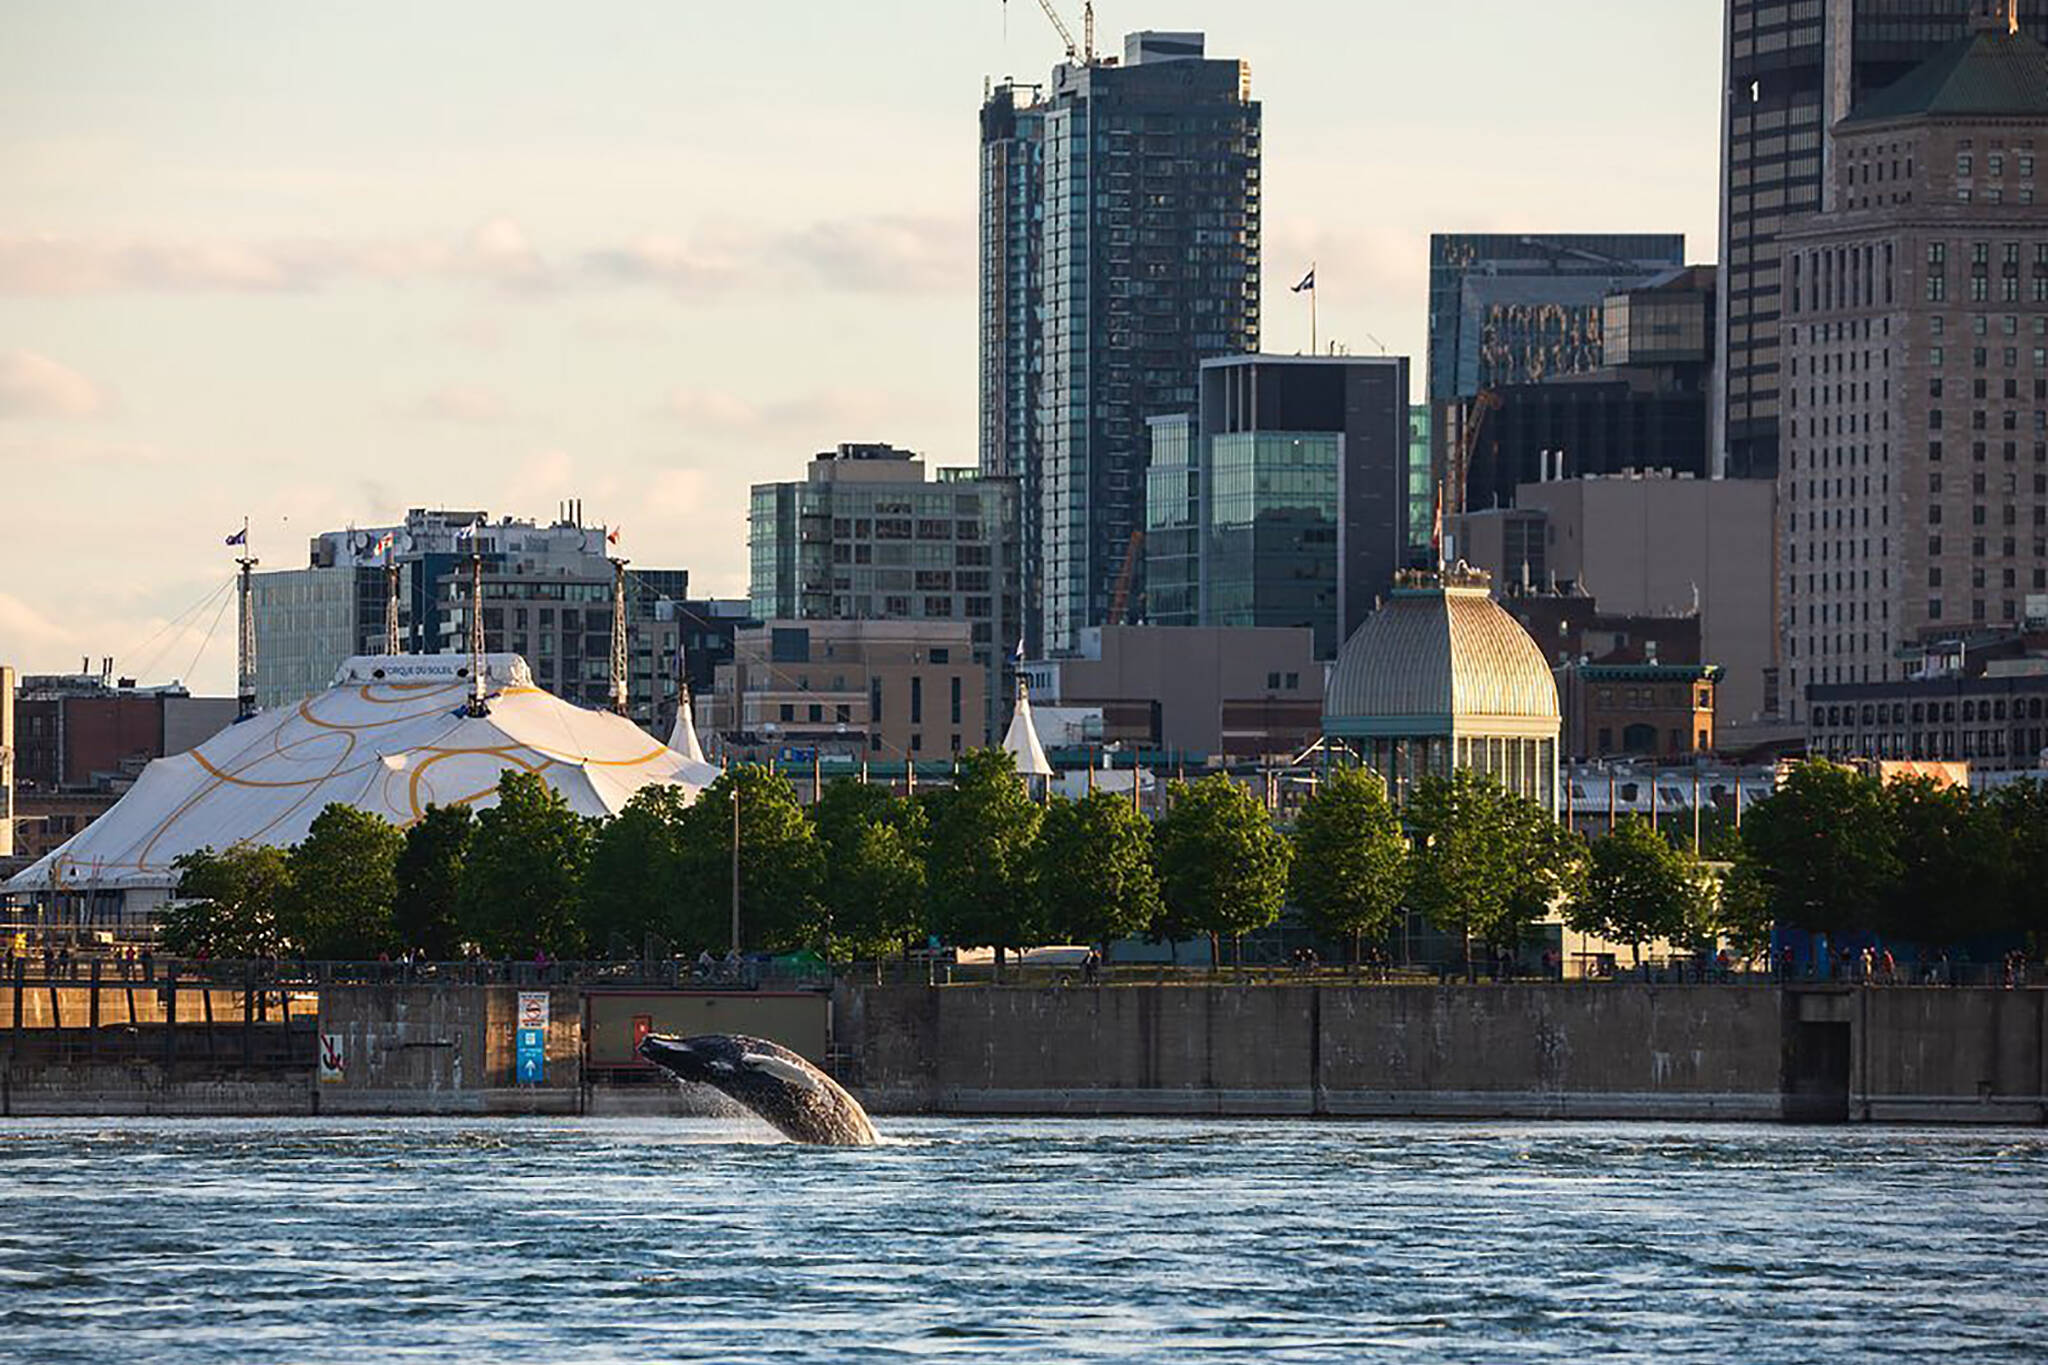 montreal dead whale boat